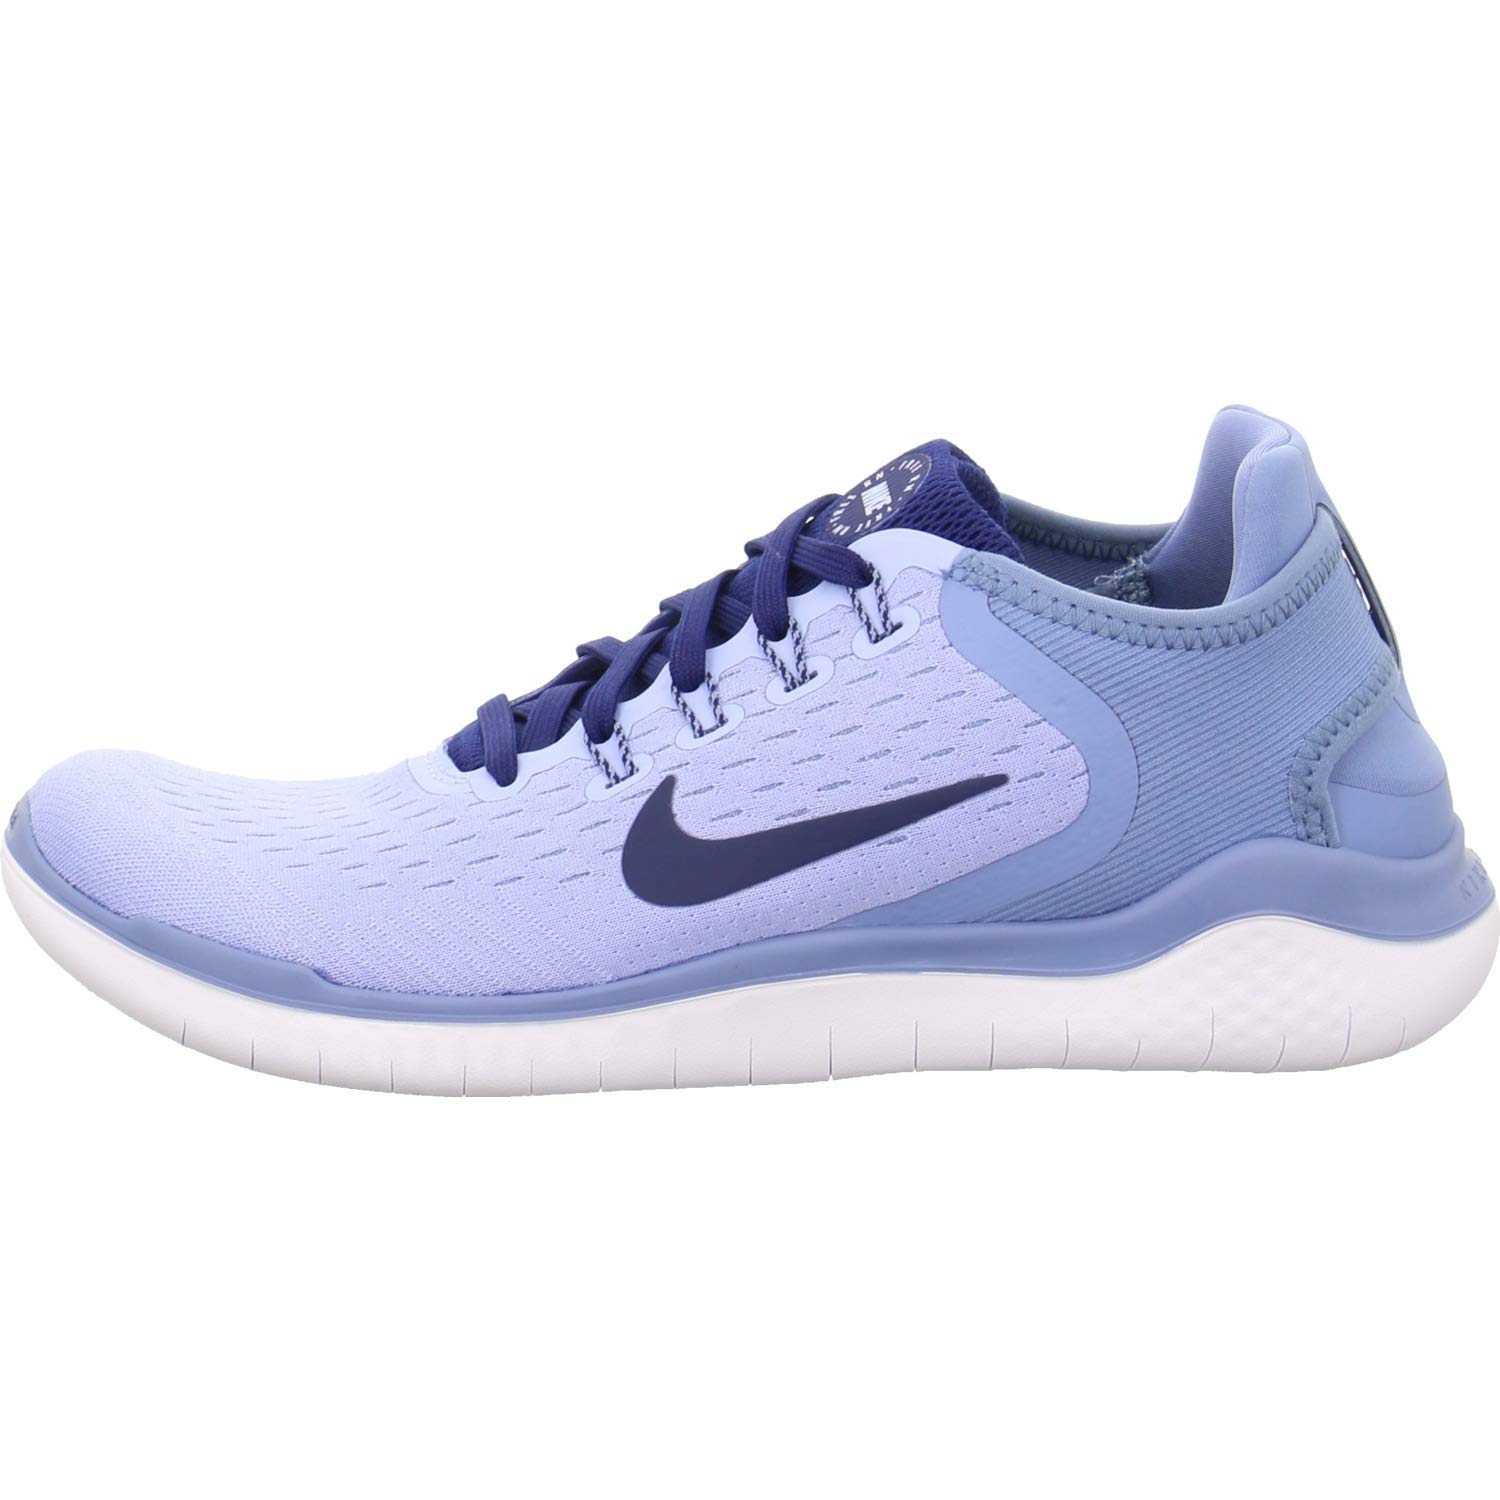 151d395742922 Amazon.com  Nike Womens Free Run 2018 Running Shoes (7 B US ...